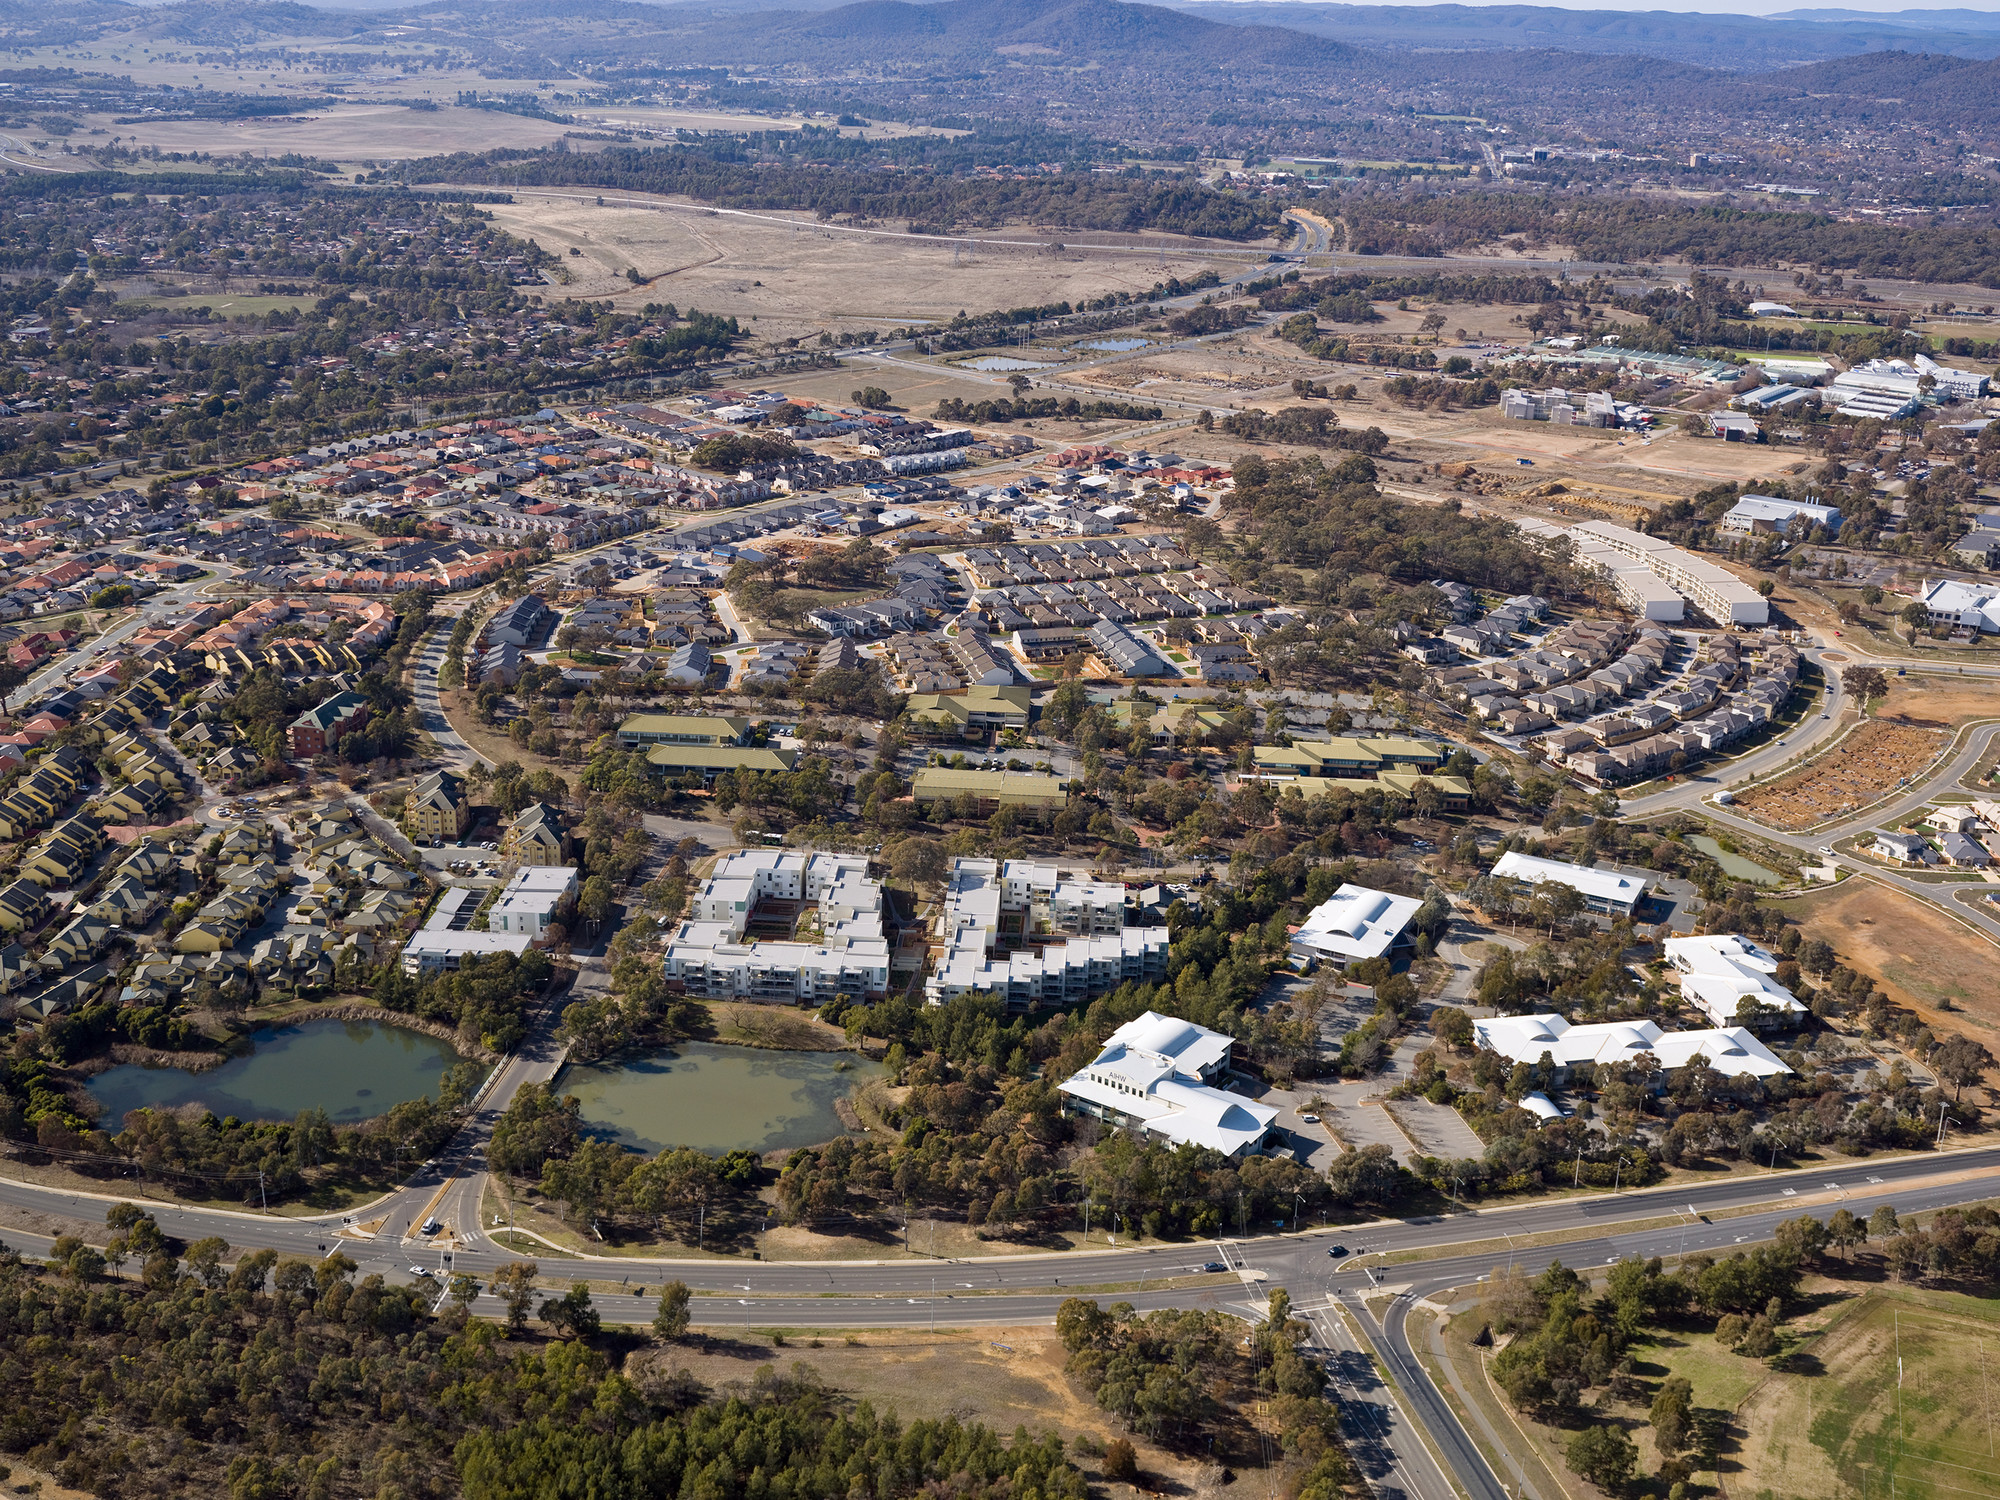 Aerial photograph showing urban landscape including homes, businesses, roads and parklands